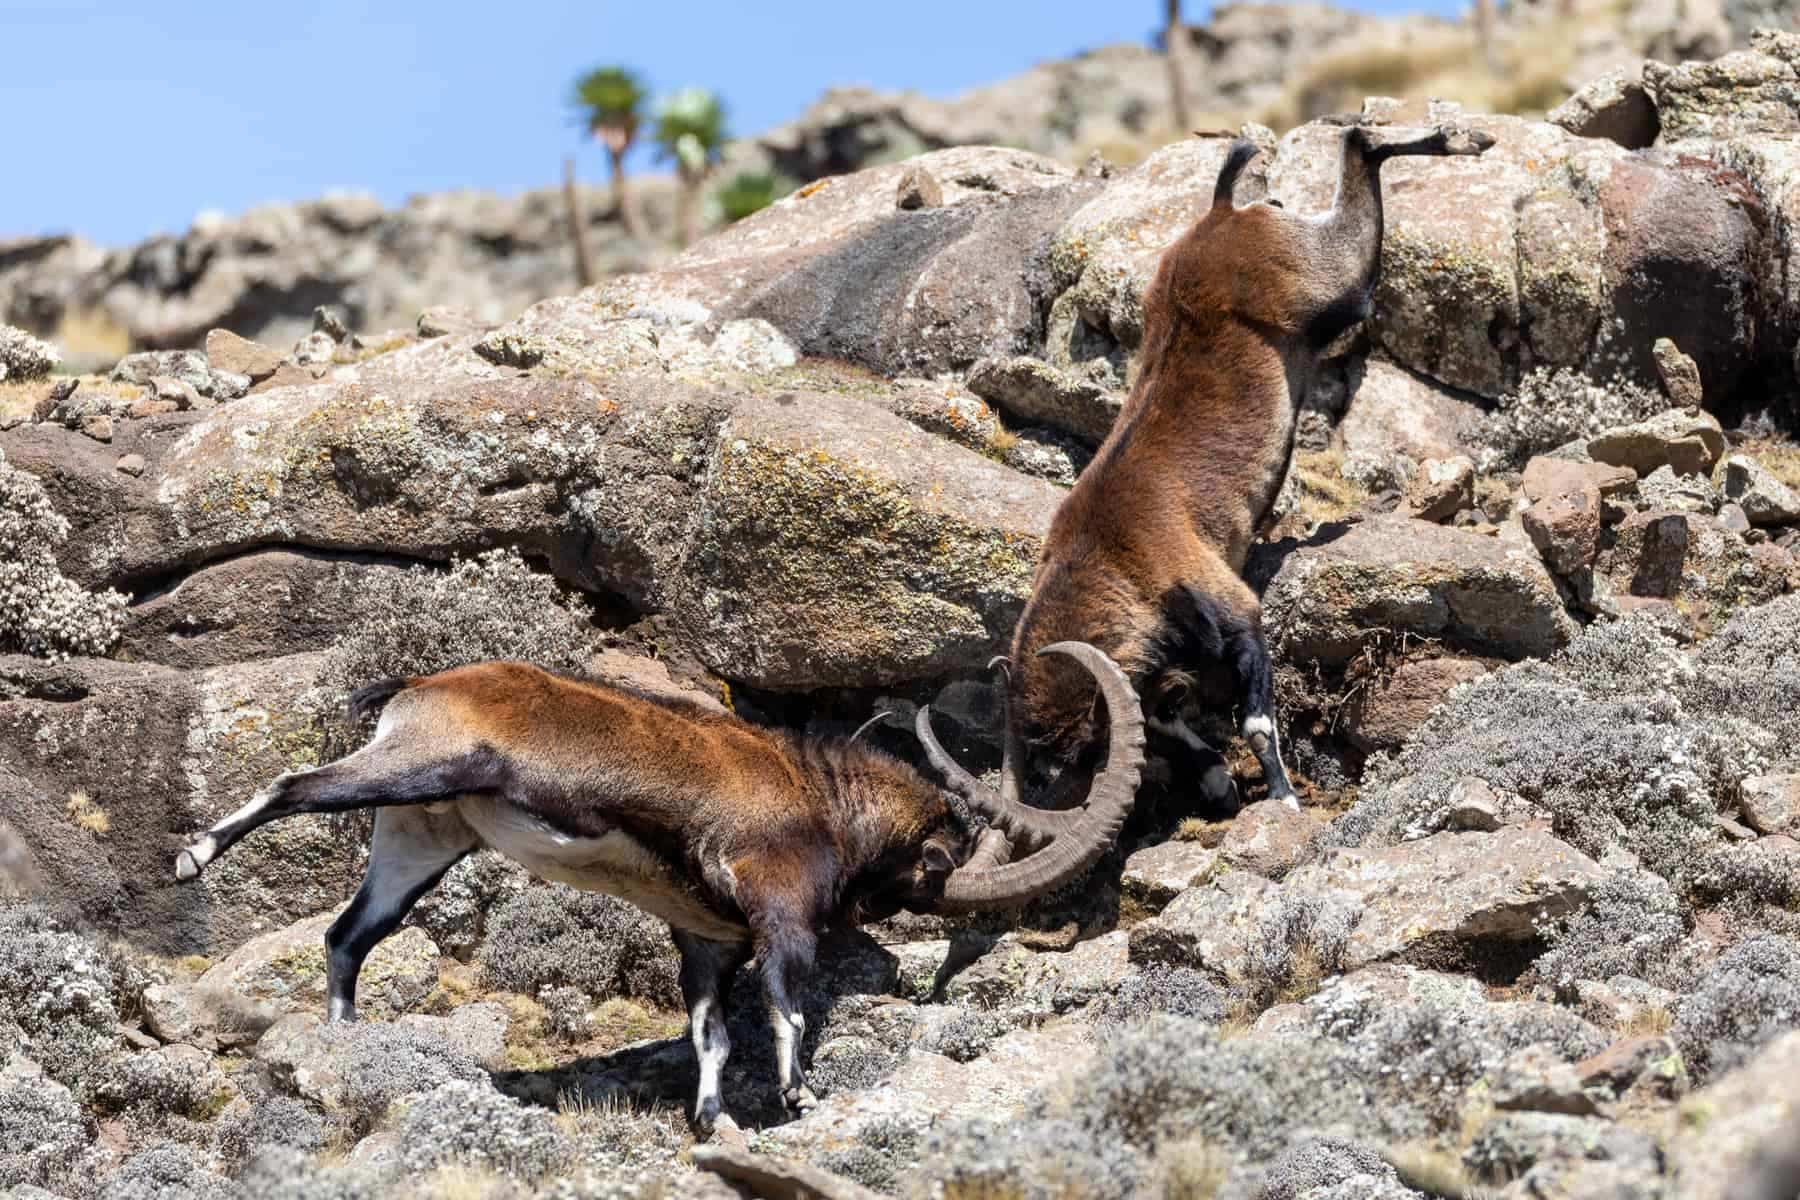 Very rare Walia ibex fighting, Capra walia, rarest ibex in world. Only about 500 individuals survived in Simien Mountains in Northern Ethiopia, Africa